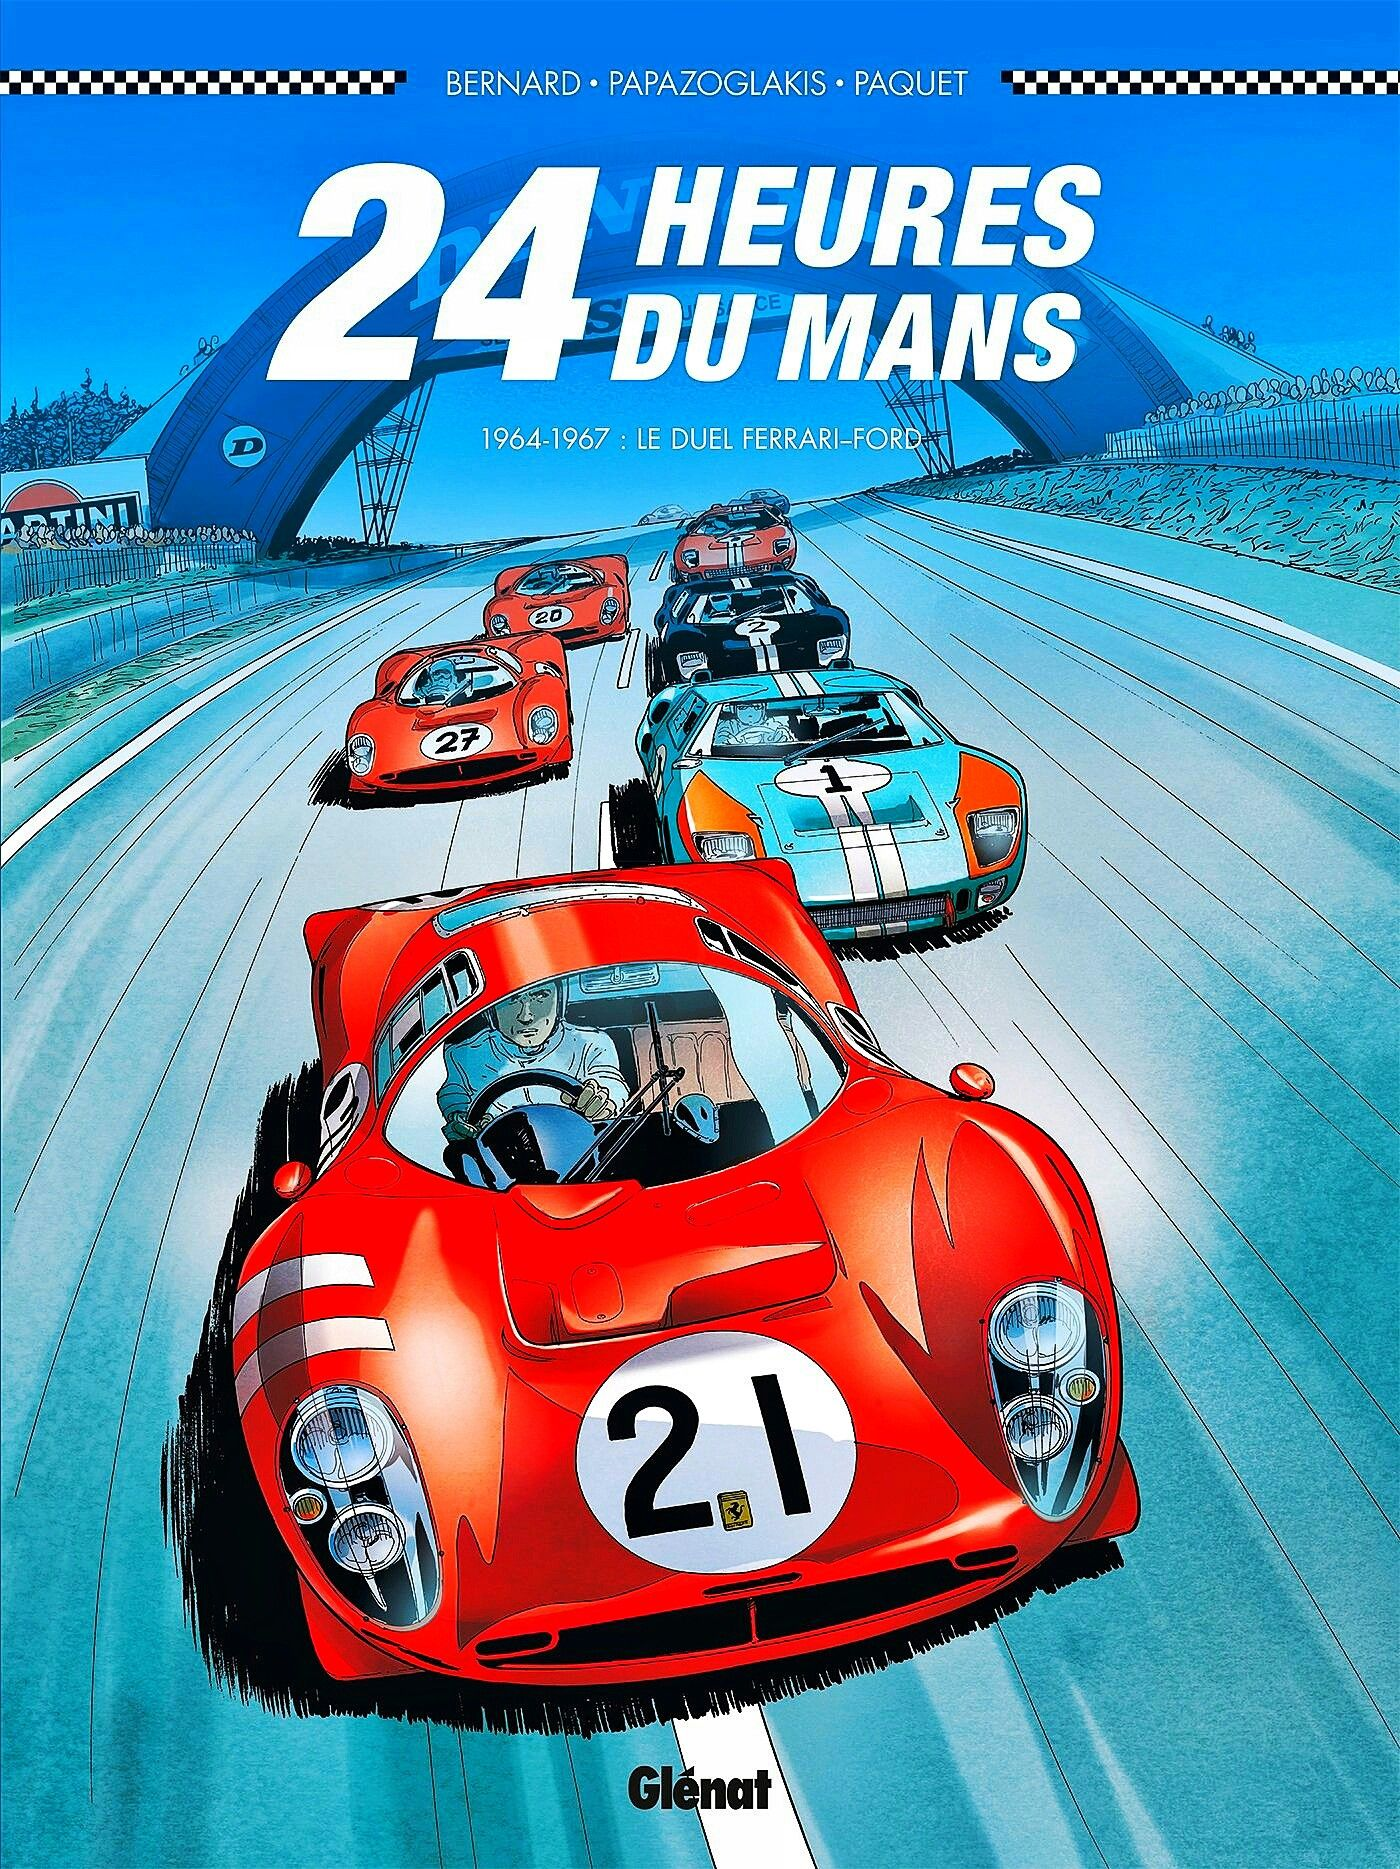 Ford Vs Ferrari At Lemans 1964 1967 Relive The Epic Duel Between Ford And Ferrari At The Legendary 24 Hou Vintage Racing Poster Auto Racing Posters Le Mans